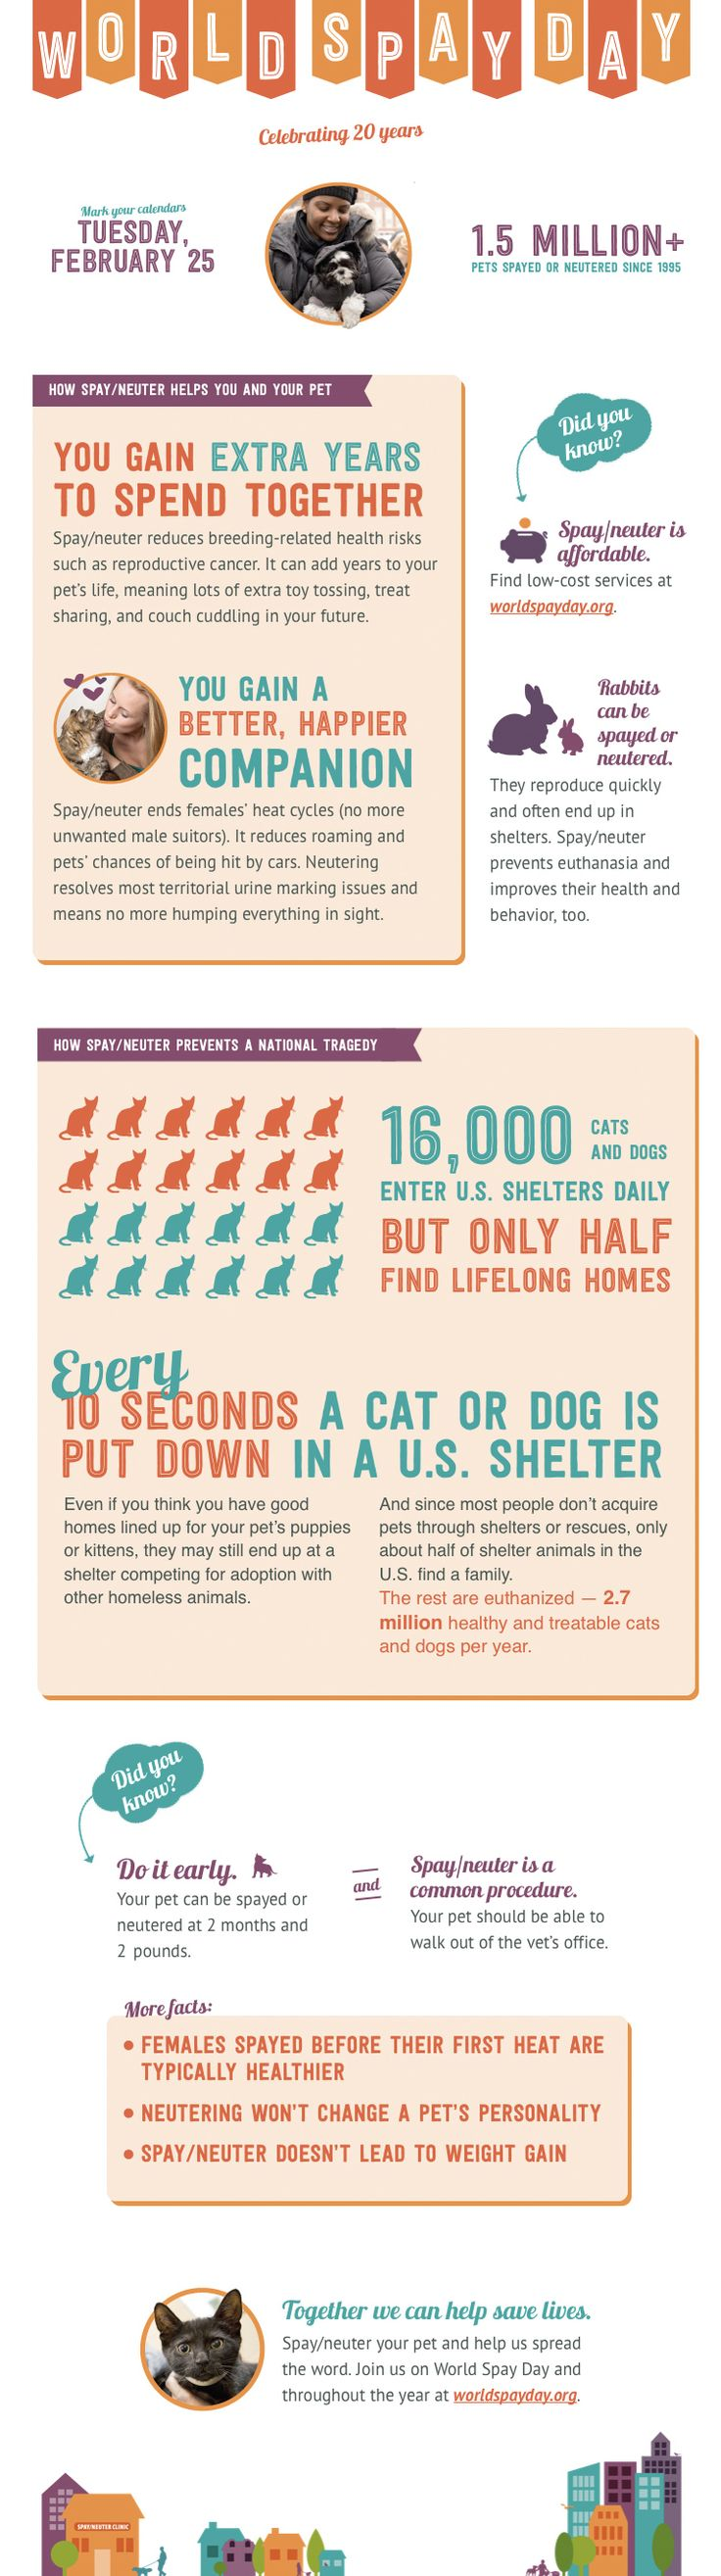 29 best Spay/Neuter images on Pinterest | Animal rescue, Animal shelter and Your pet